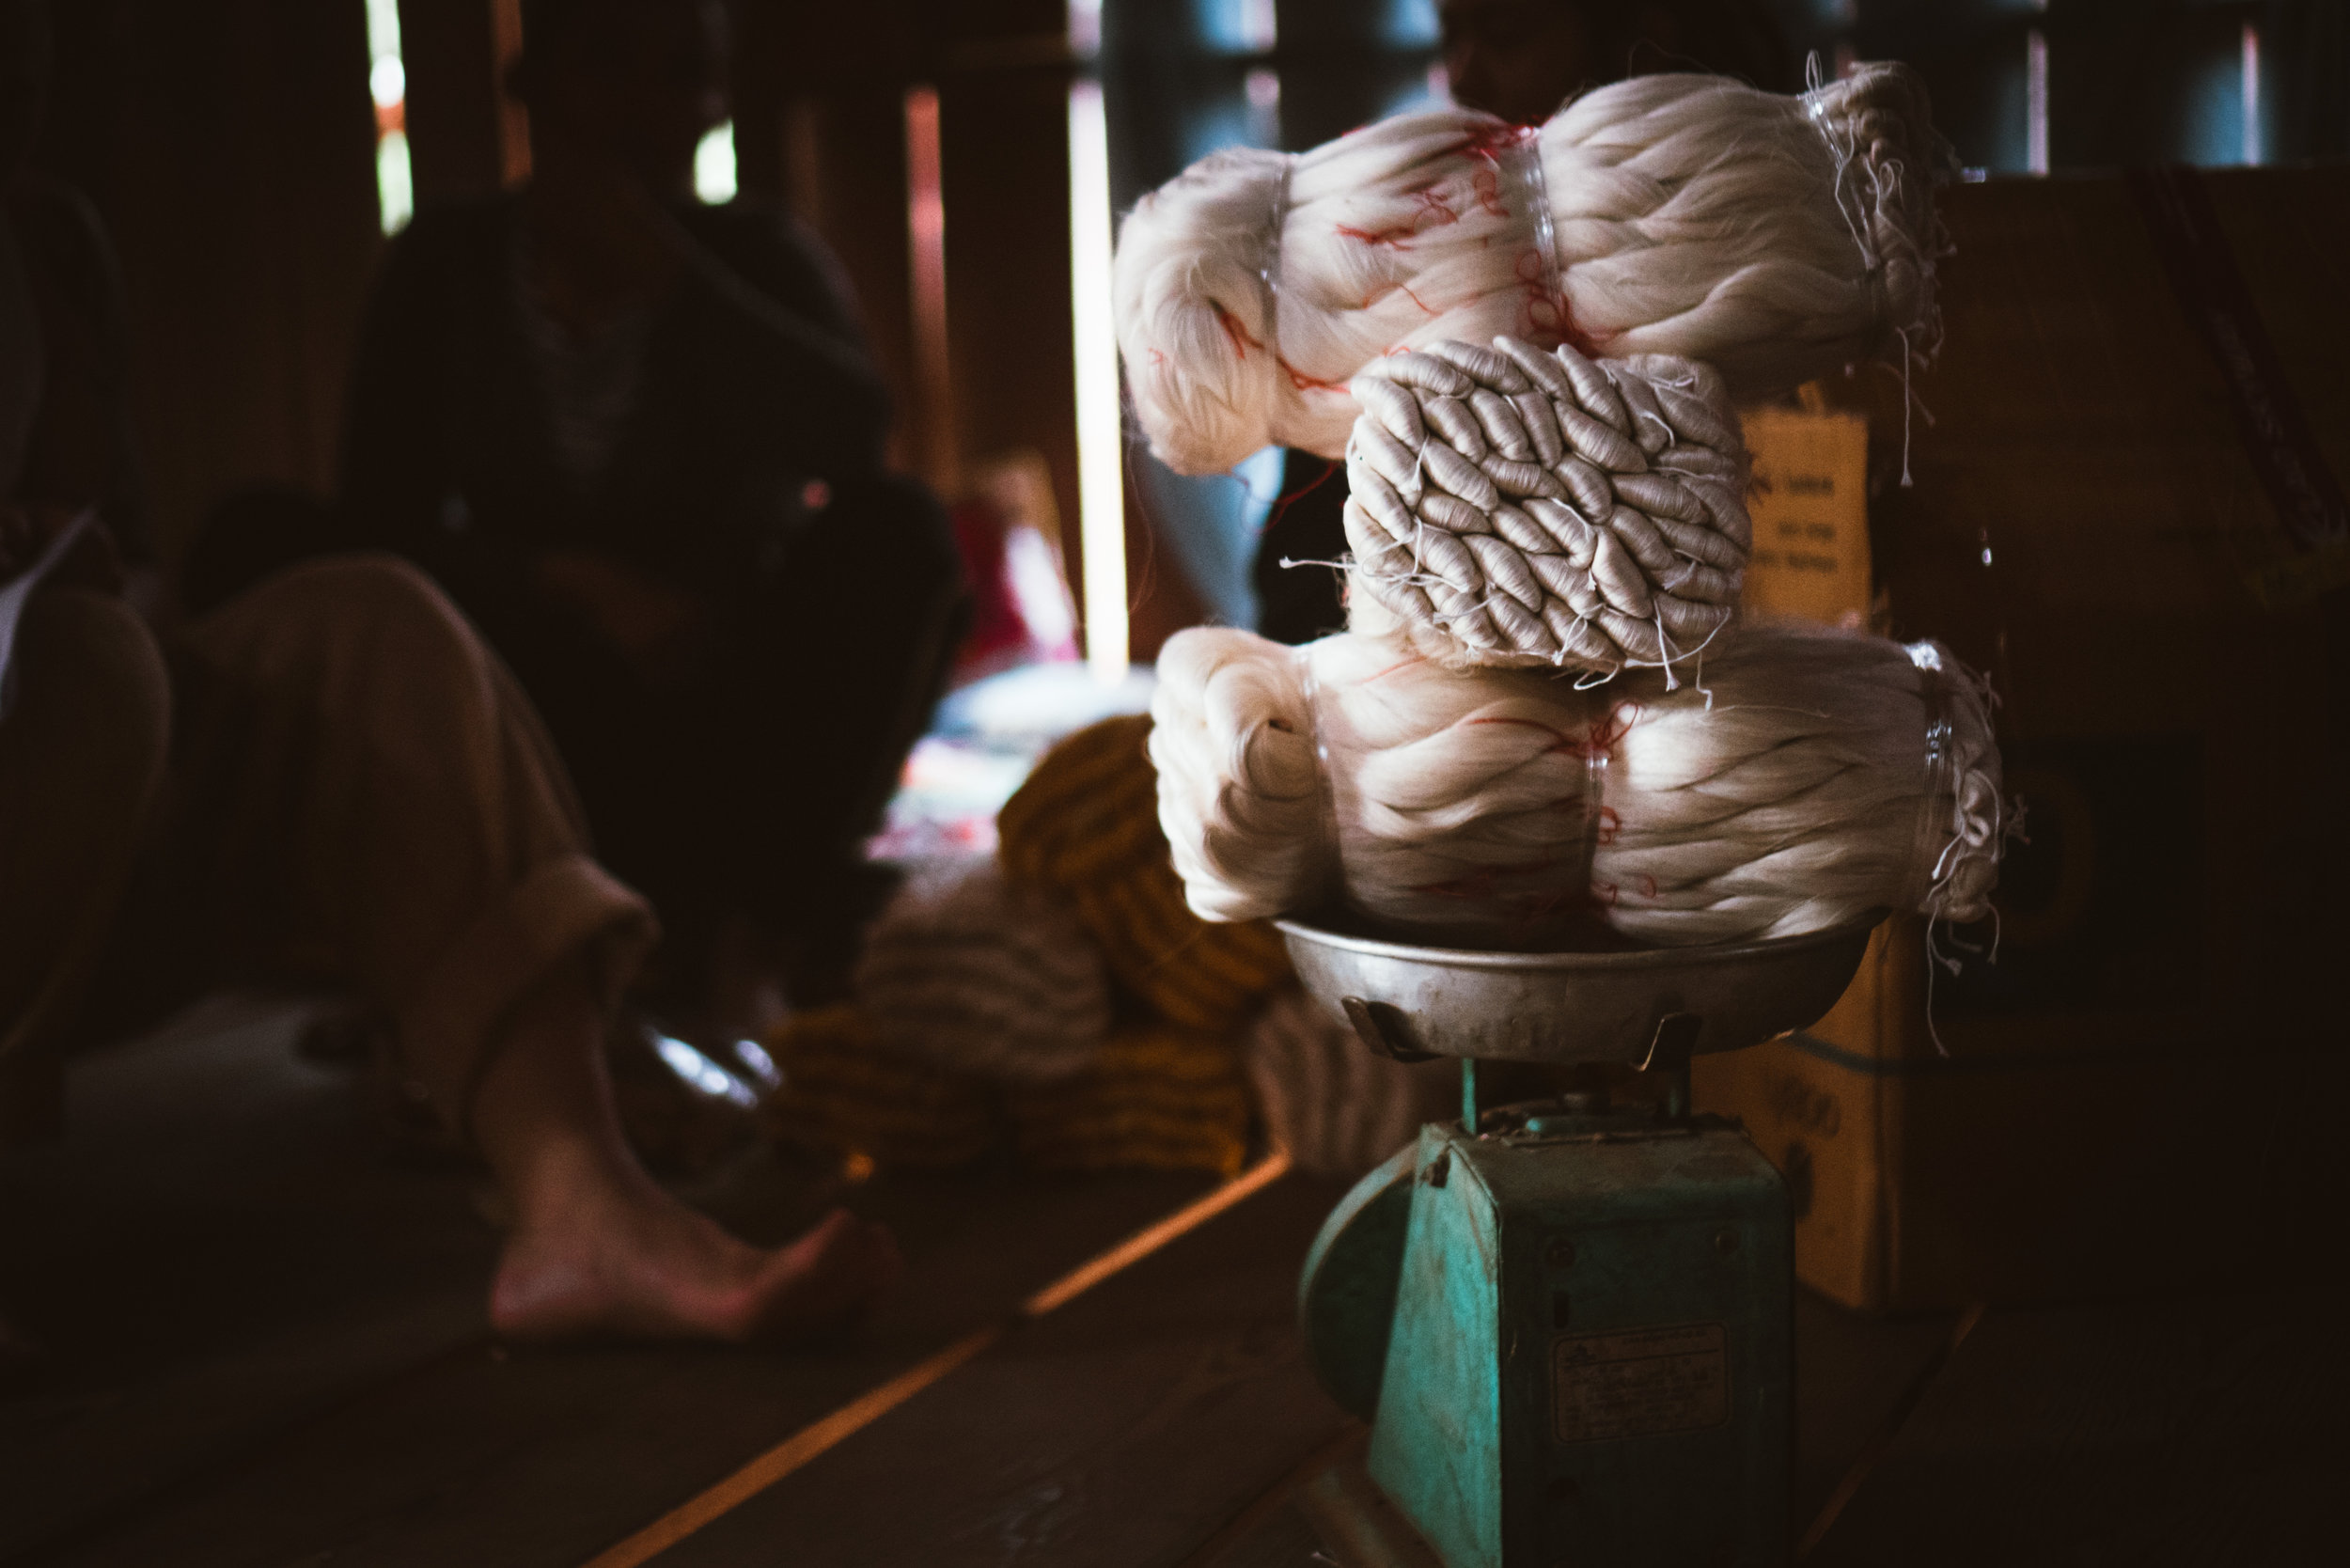 Weighing Raw Silk, Xiang Khouang, Laos